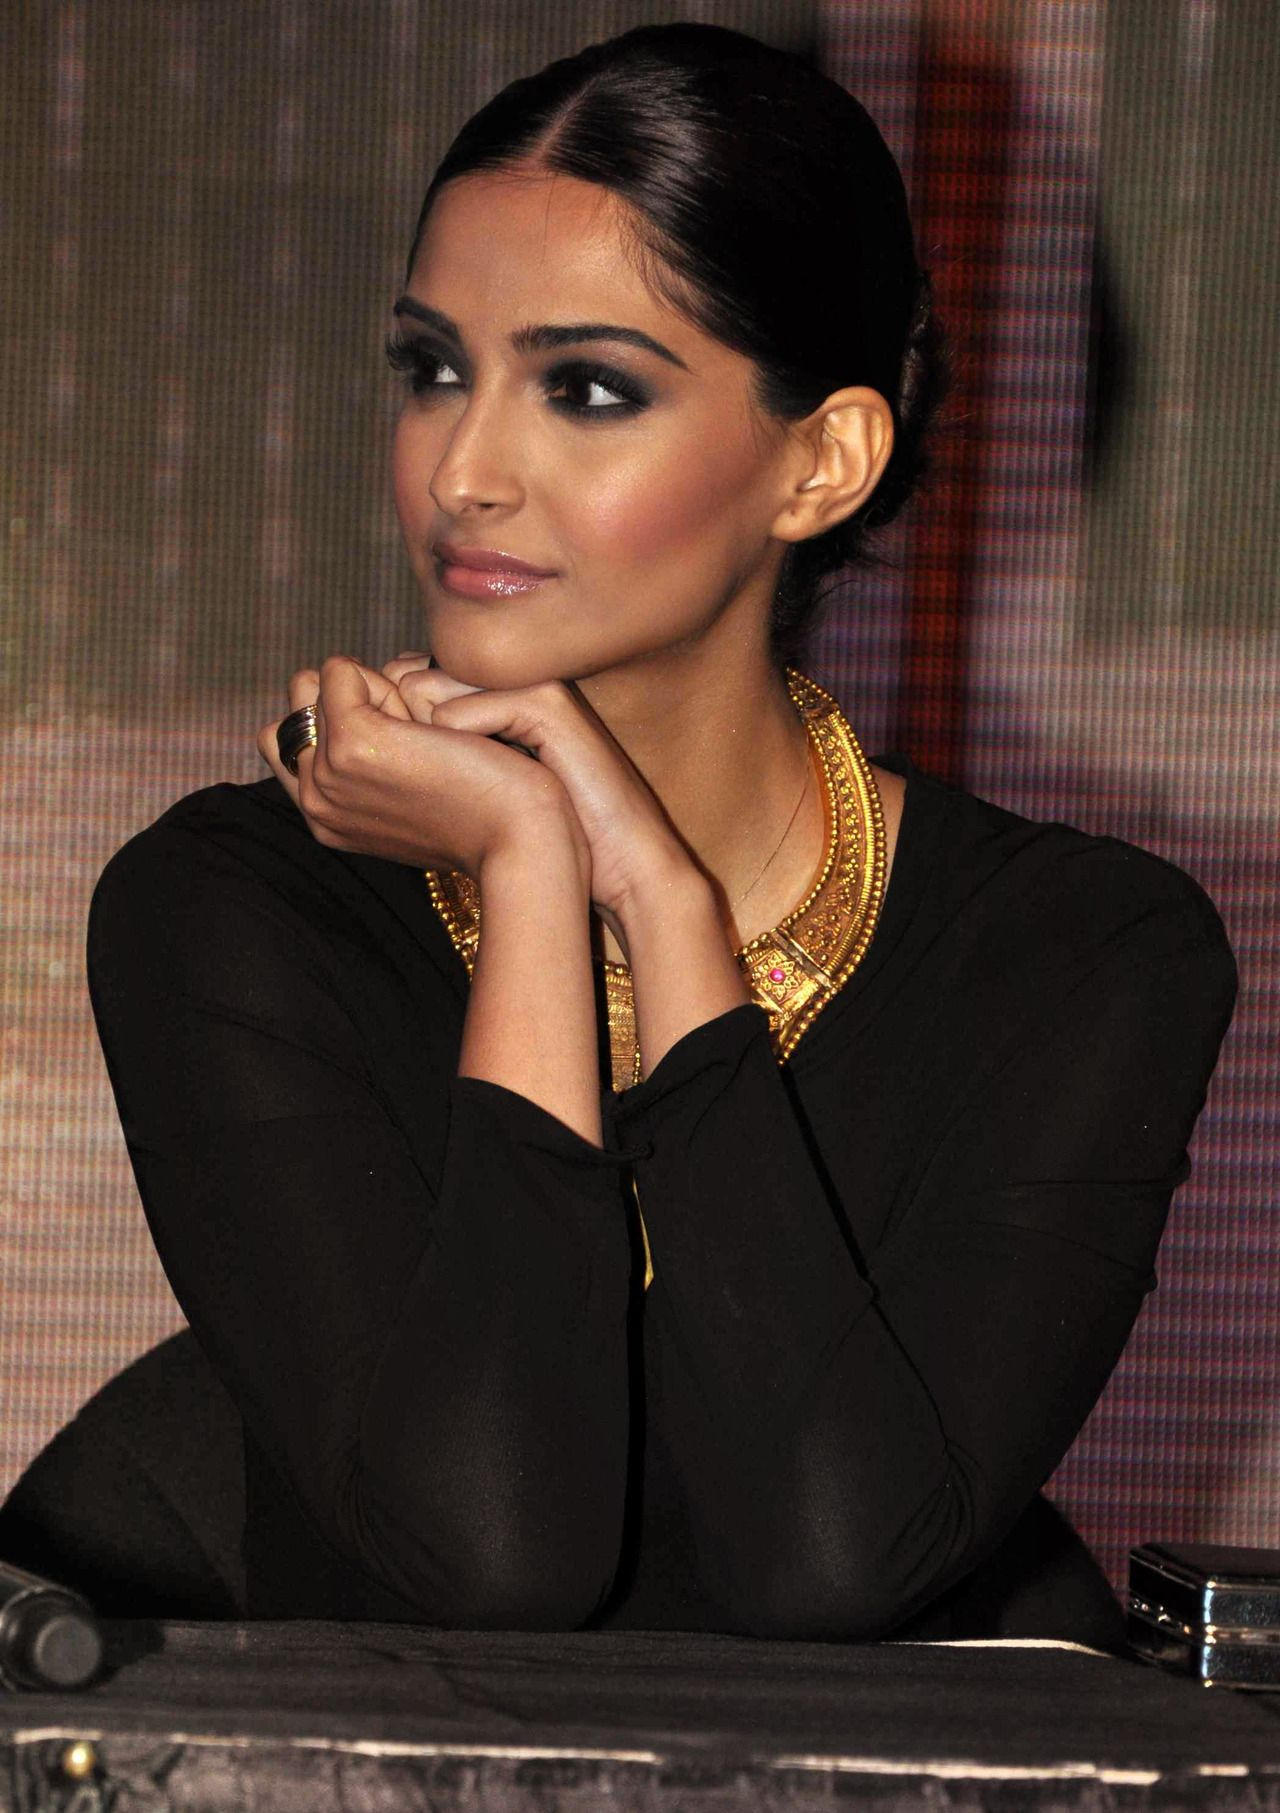 Sonam Kapoor Perfect Evening Makeup With Intense Smokey